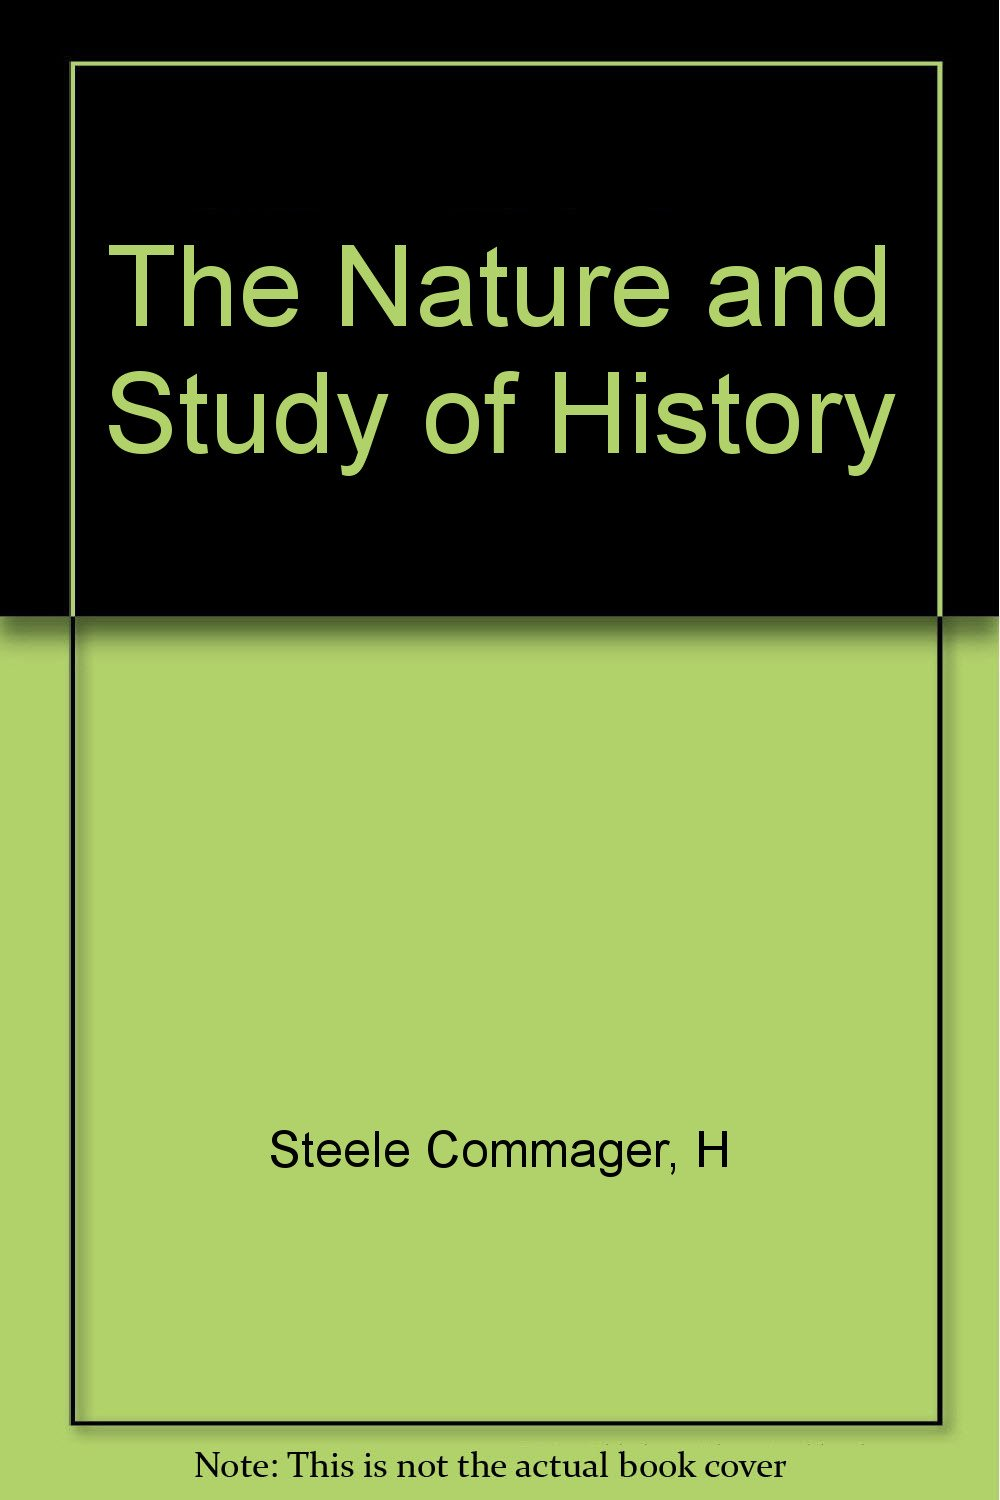 The Nature and Study of History, Steele Commager, H